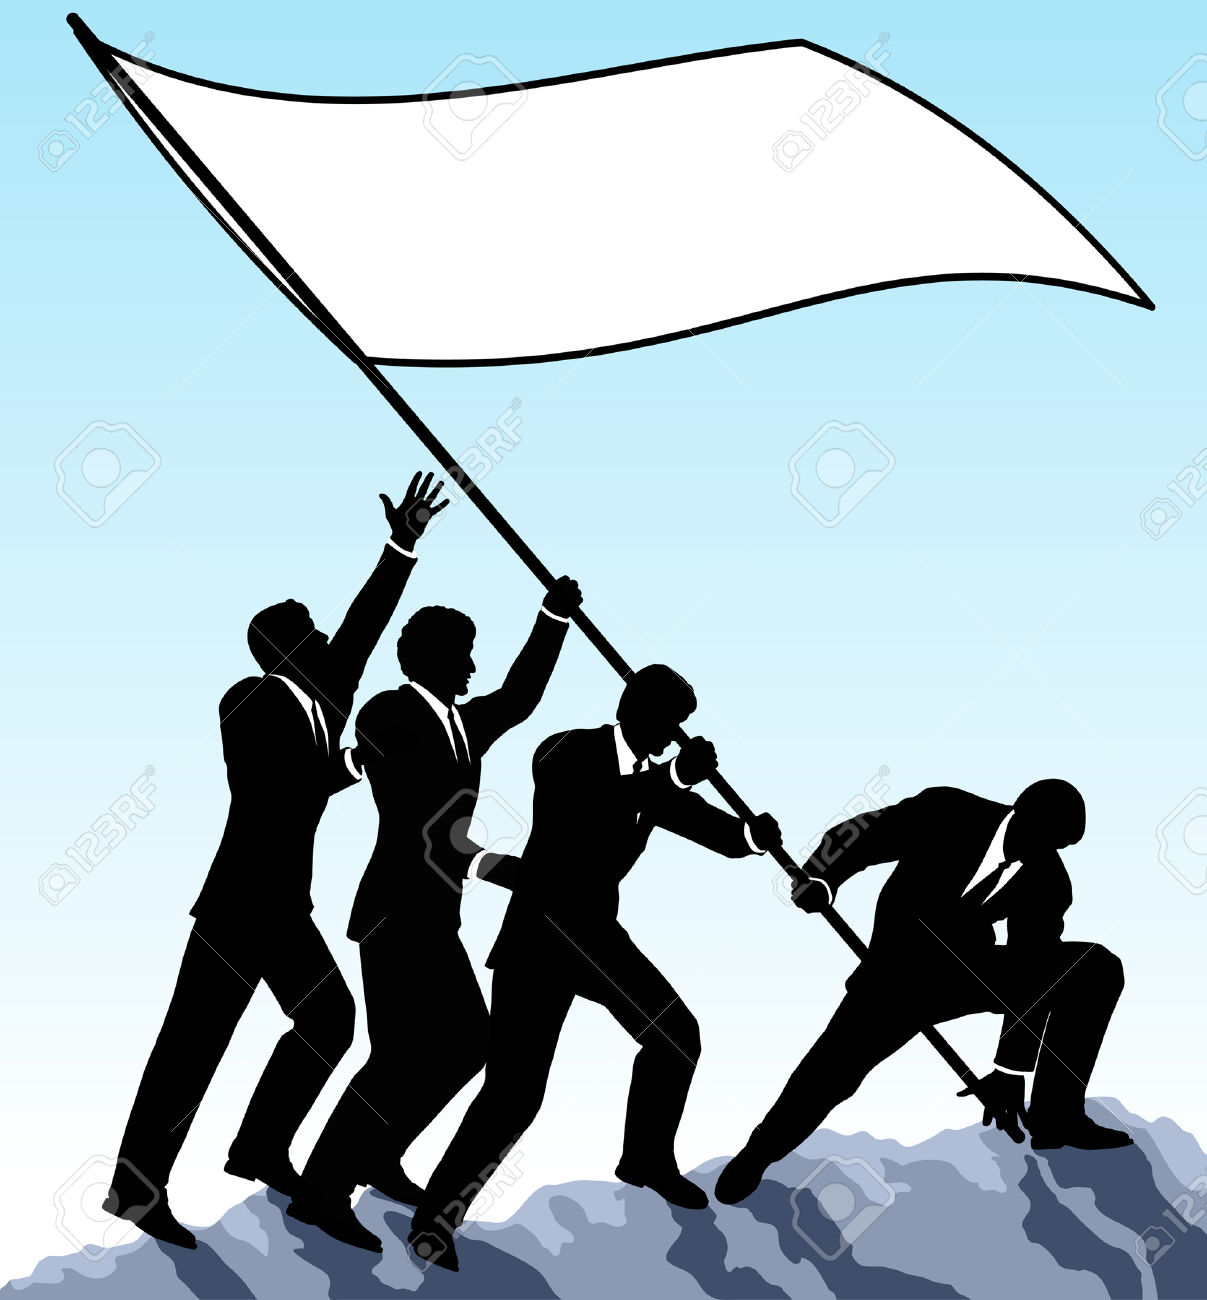 Editable Vector Illustration Of Businessmen Raising A Flag With.